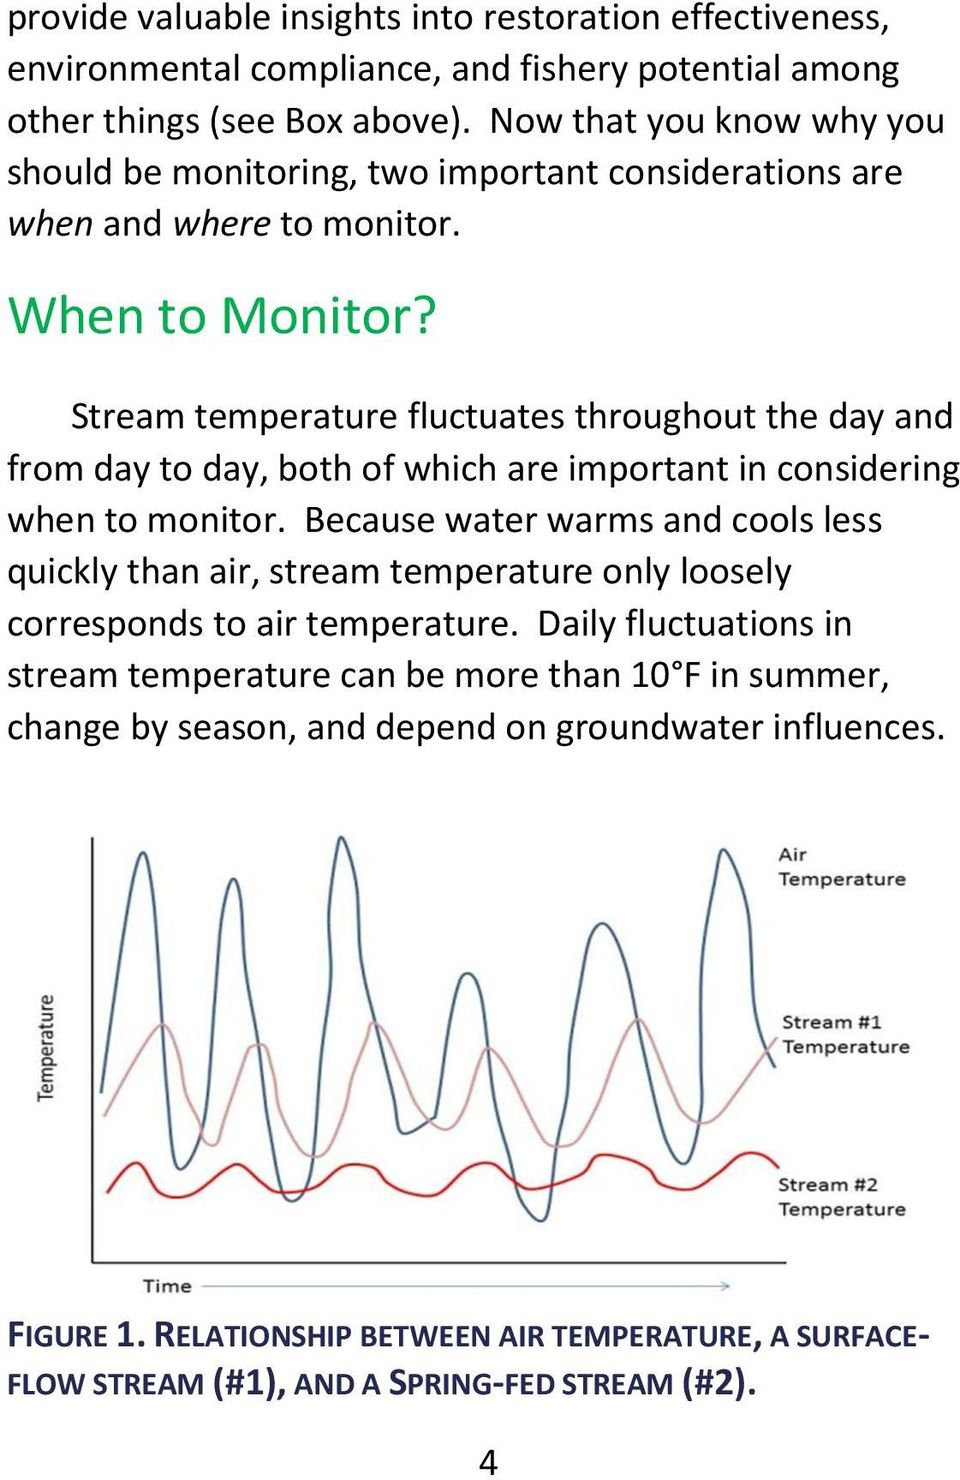 Stream temperature fluctuates throughout the day and from day to day, both of which are important in considering when to monitor.